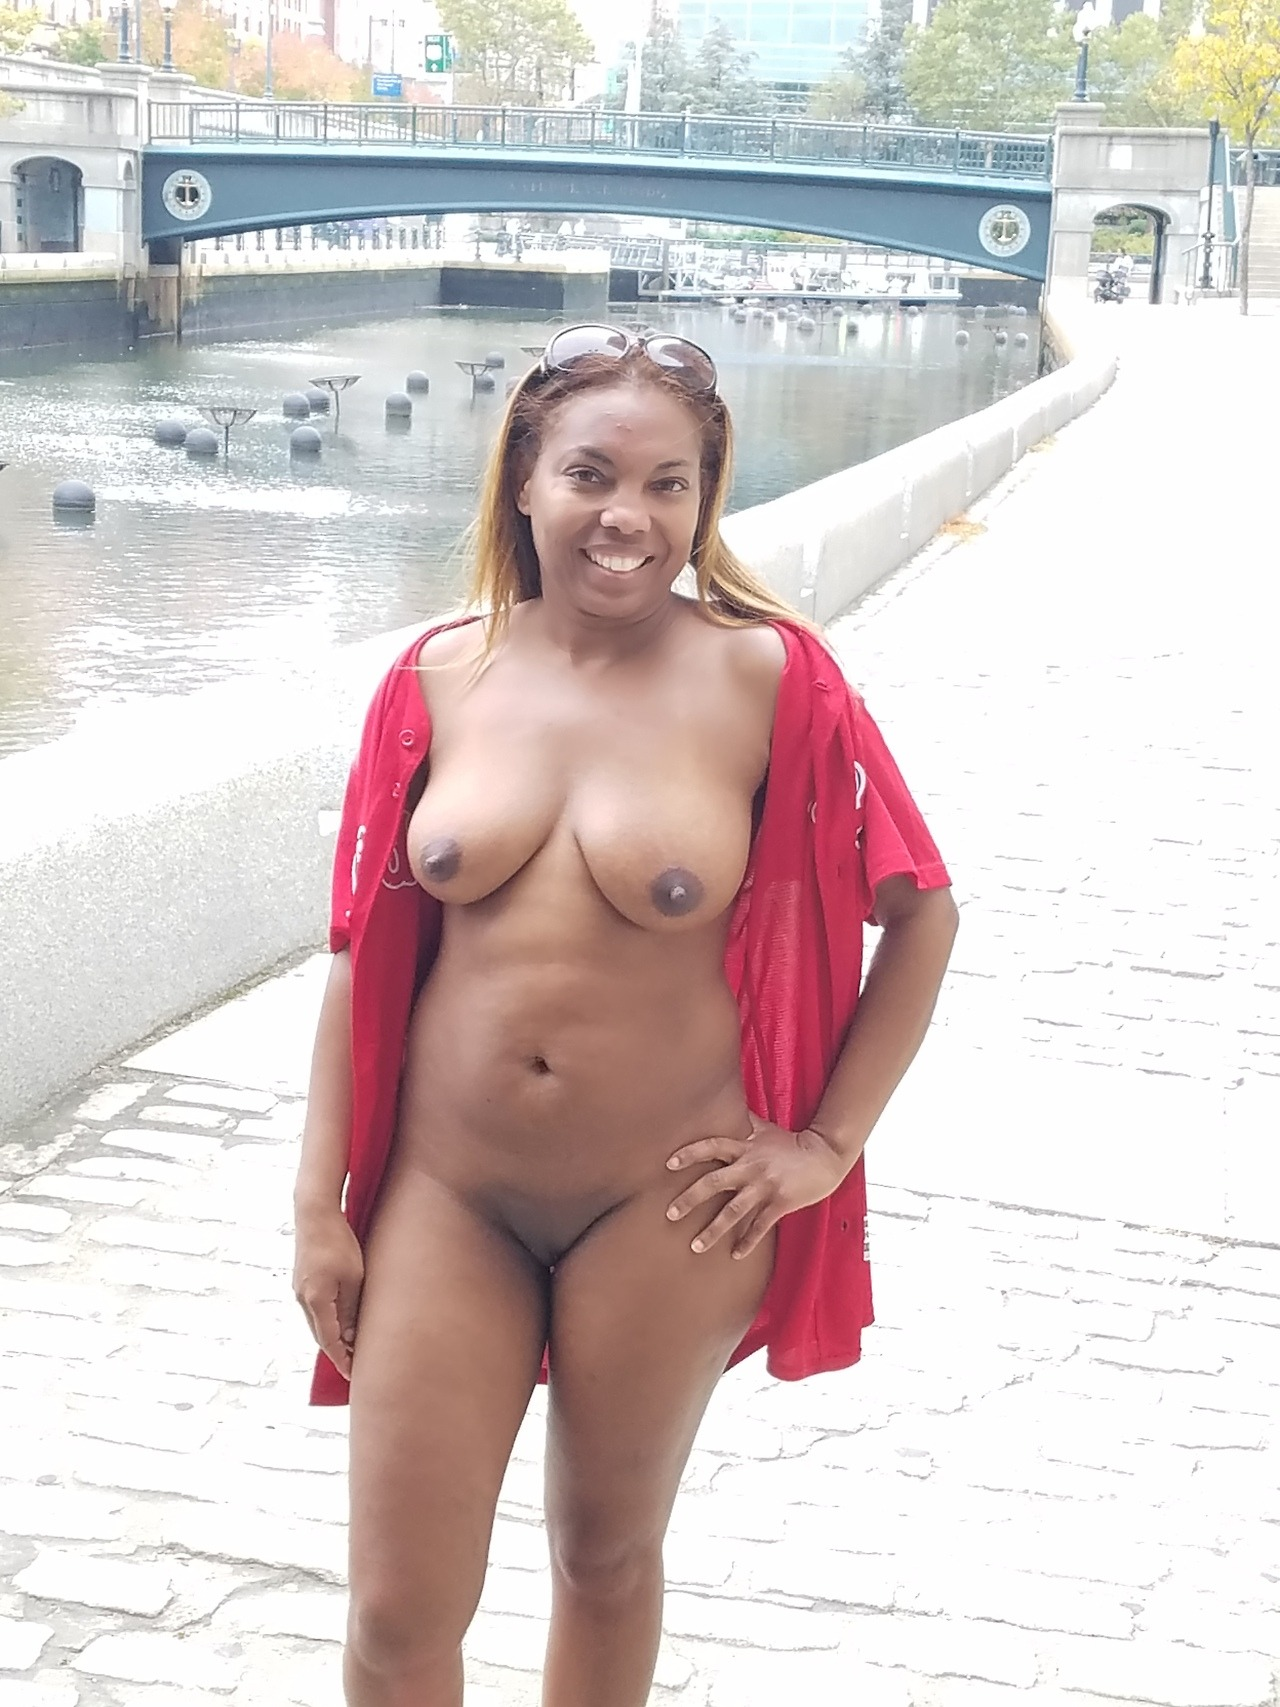 Free video of ebony sex ebonyporn vids  hardcore dog porn free big tites videos